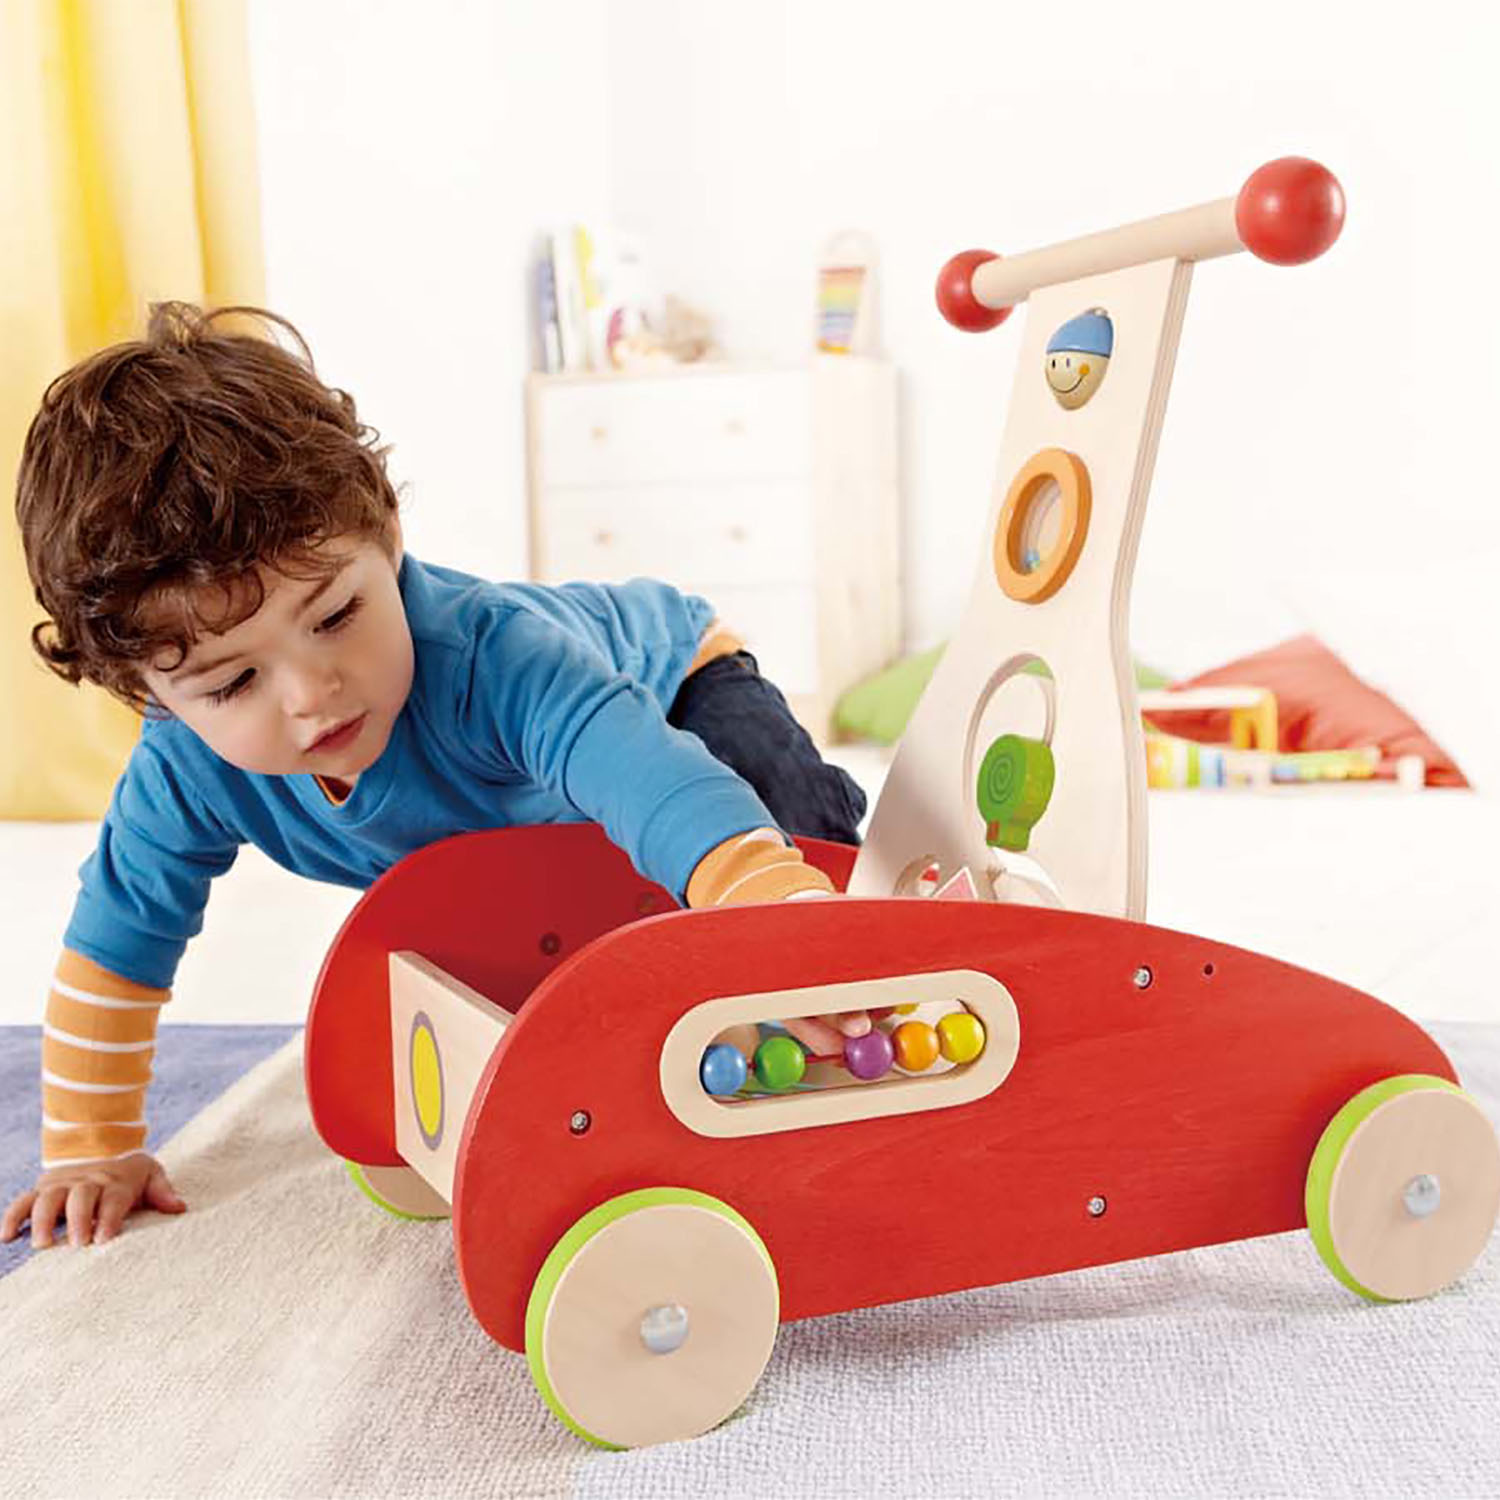 Hape Toys Toddler Baby Push /& Pull Toy Wonder Walker Cart with Wooden Blocks